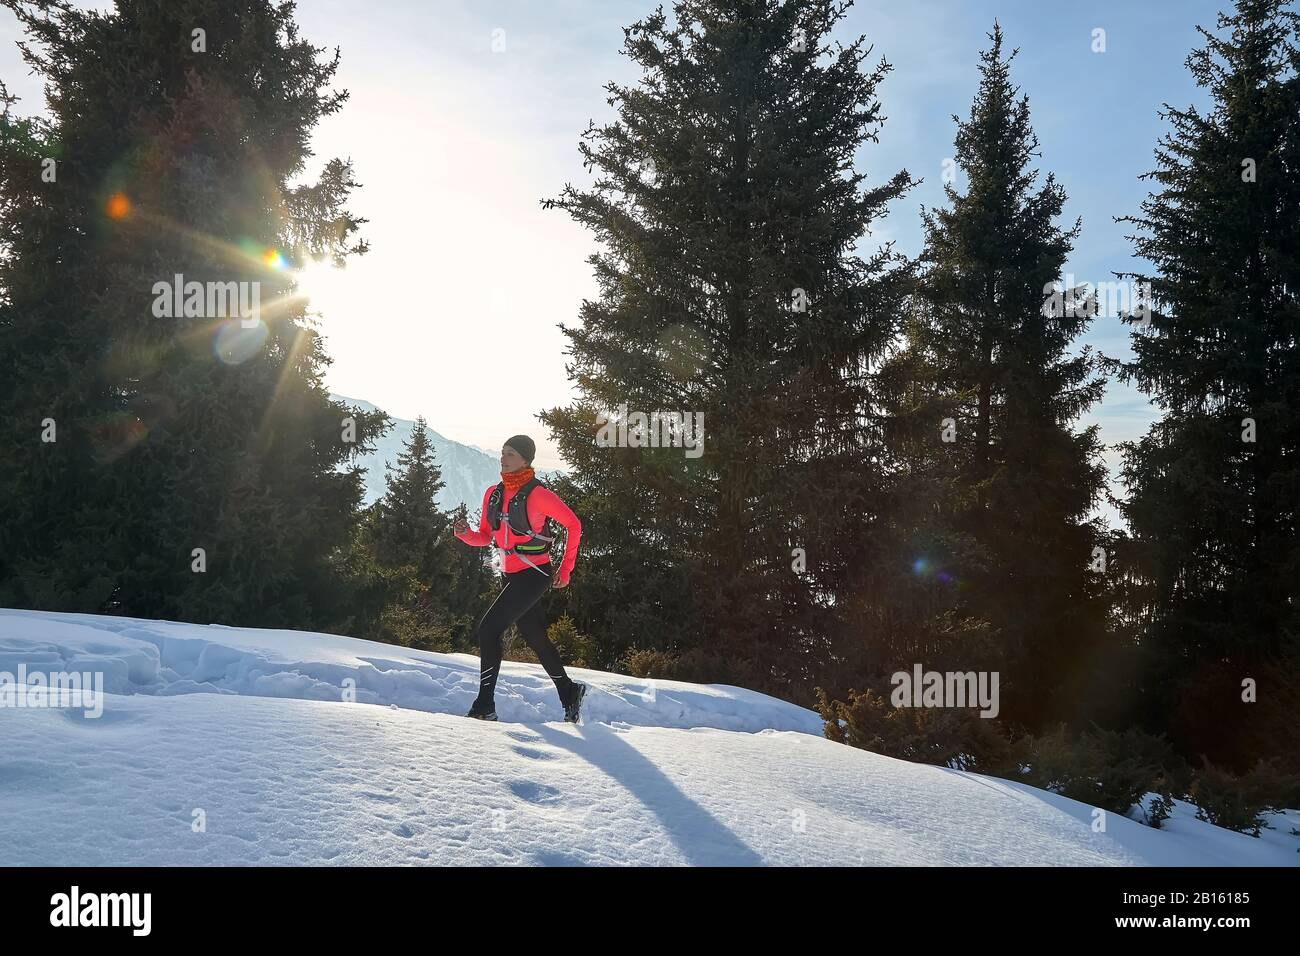 Trail runner in pink jacket woman running in winter mountains trail on snow.  Stock Photo